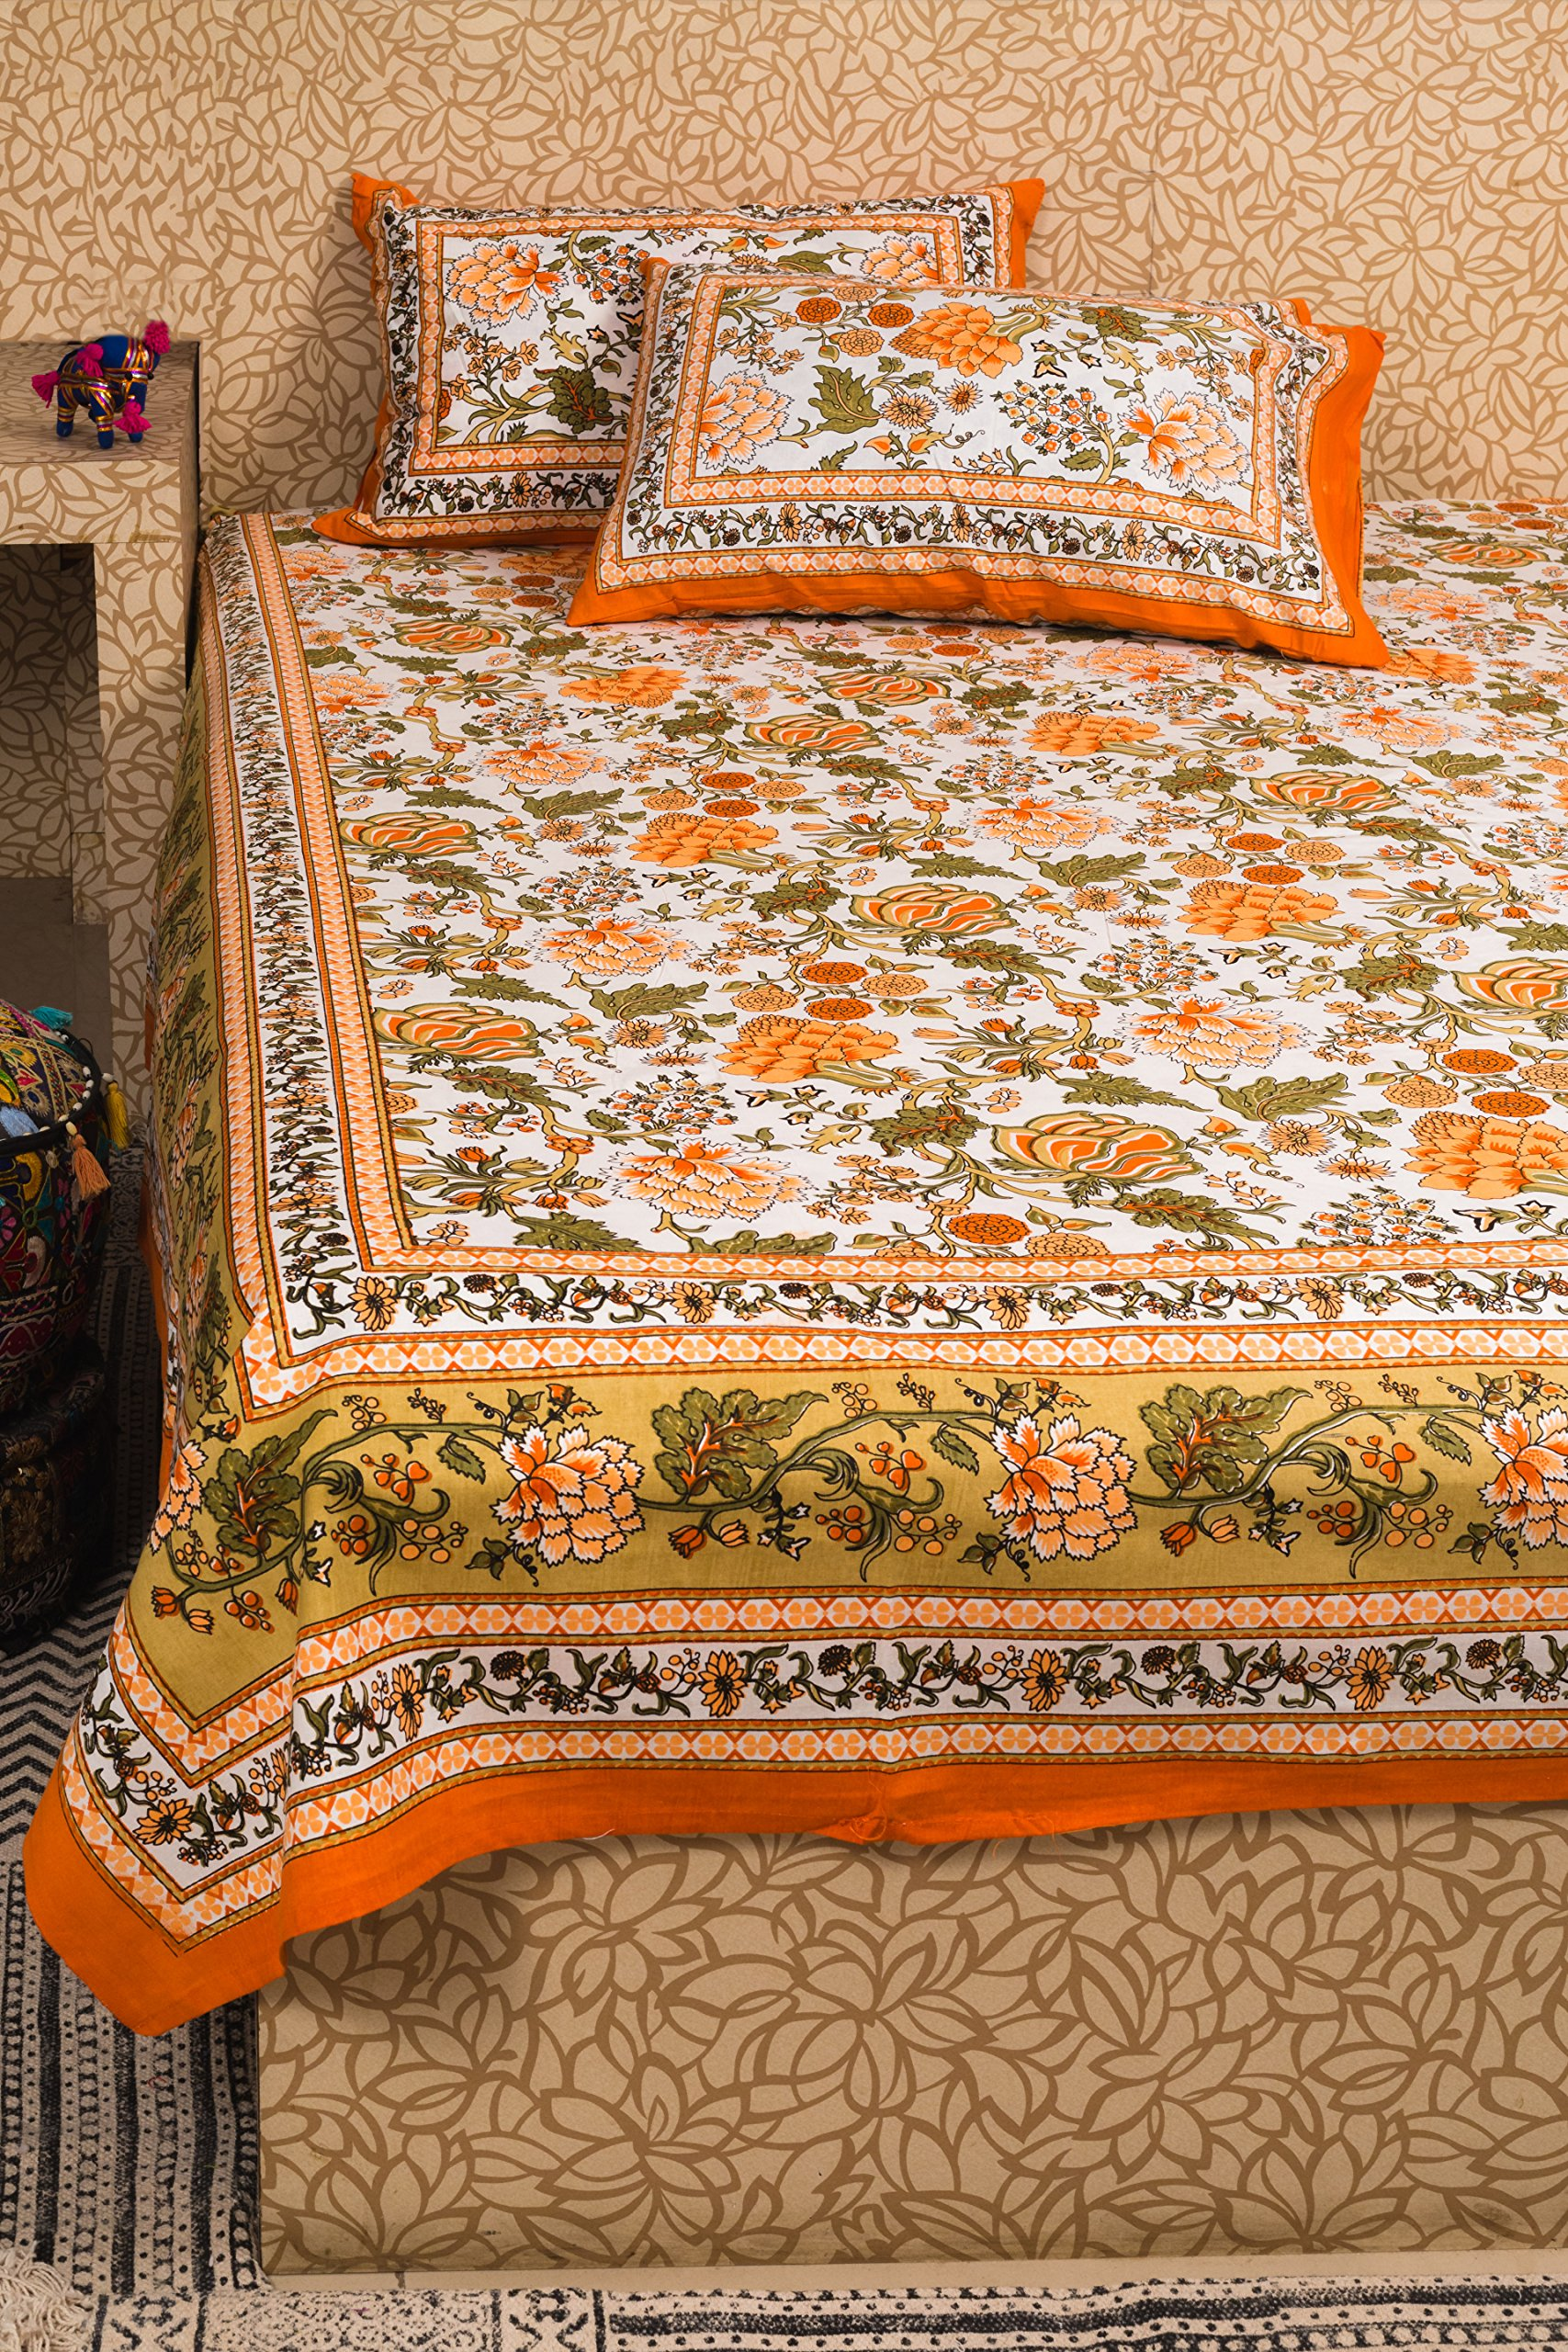 KunhaR Jaipur Screen printed Queen size 100% cotton double Bed sheet with 2 pillow covers